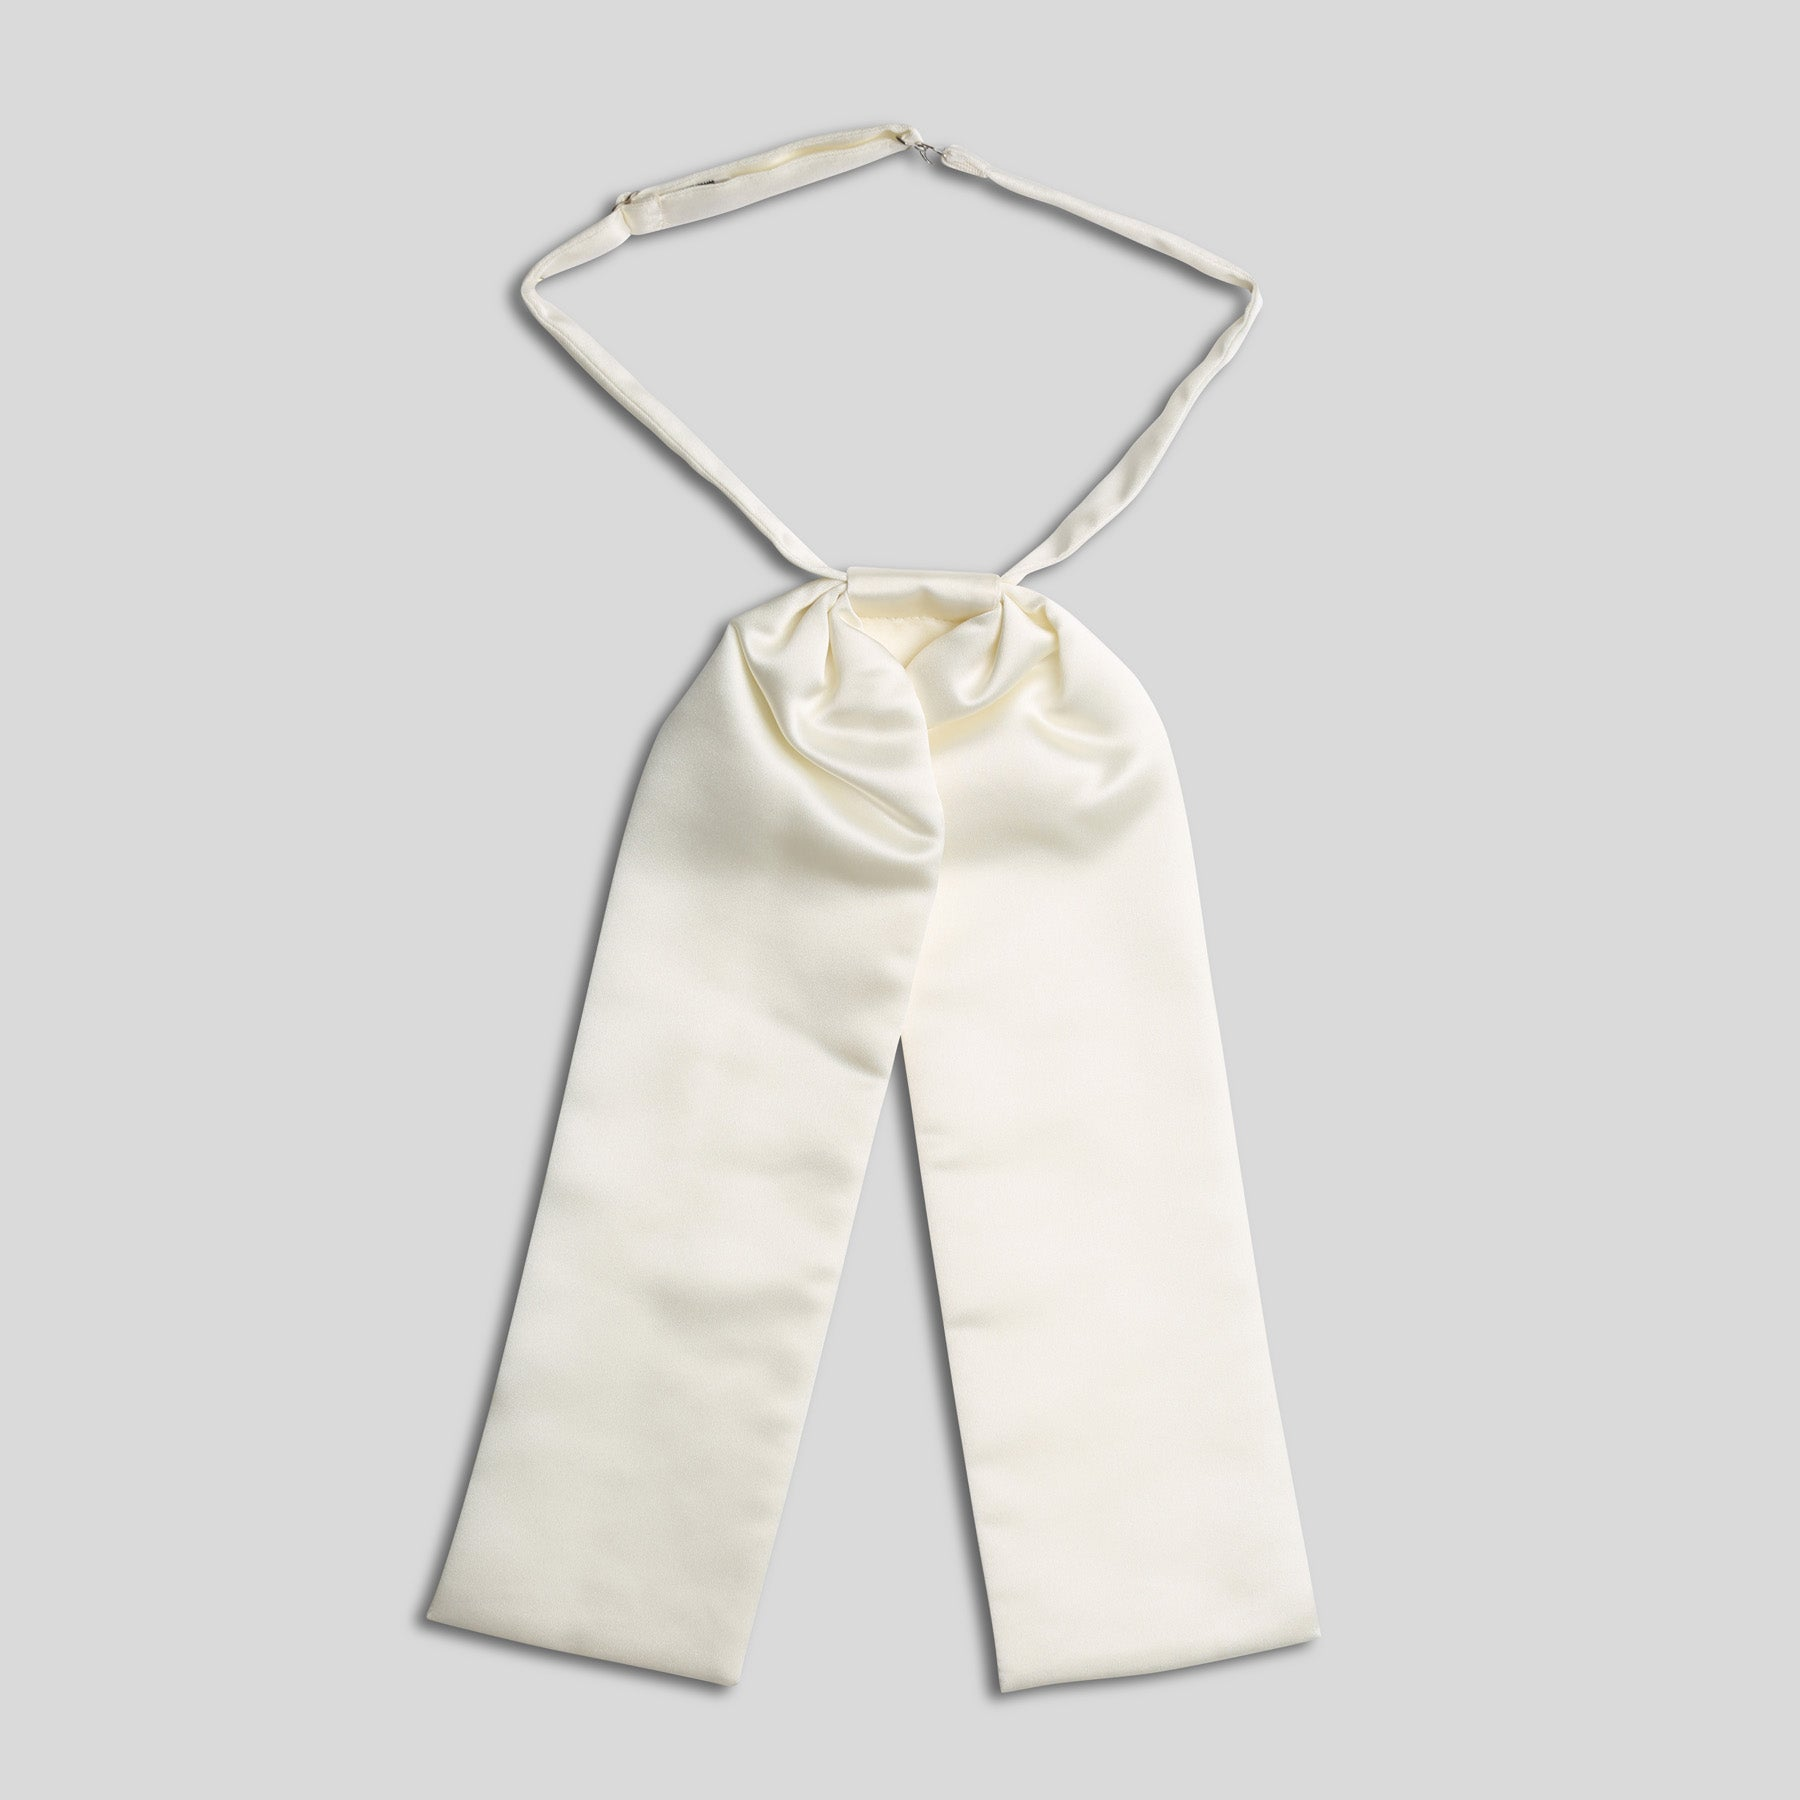 Folkespeare Ivory Satin Swatch Wedding Cravat With Pearl Pin